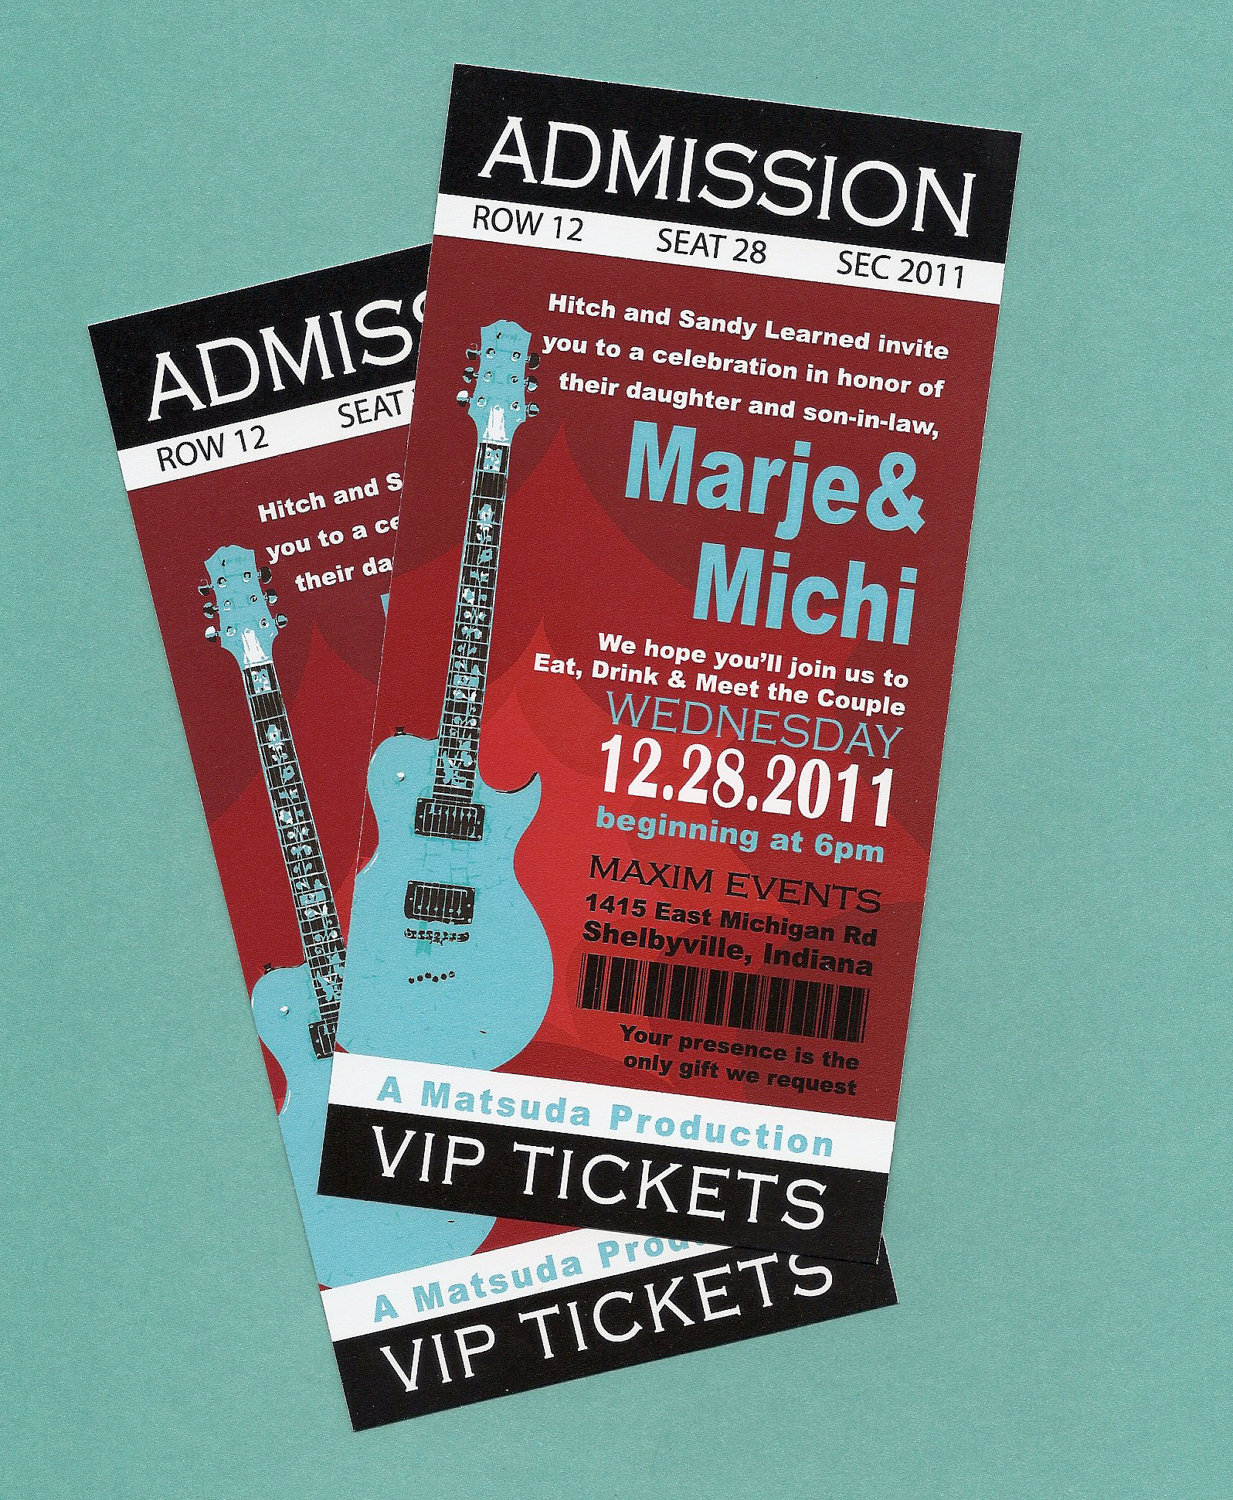 Concert Ticket Invitation  Make Your Own Concert Tickets